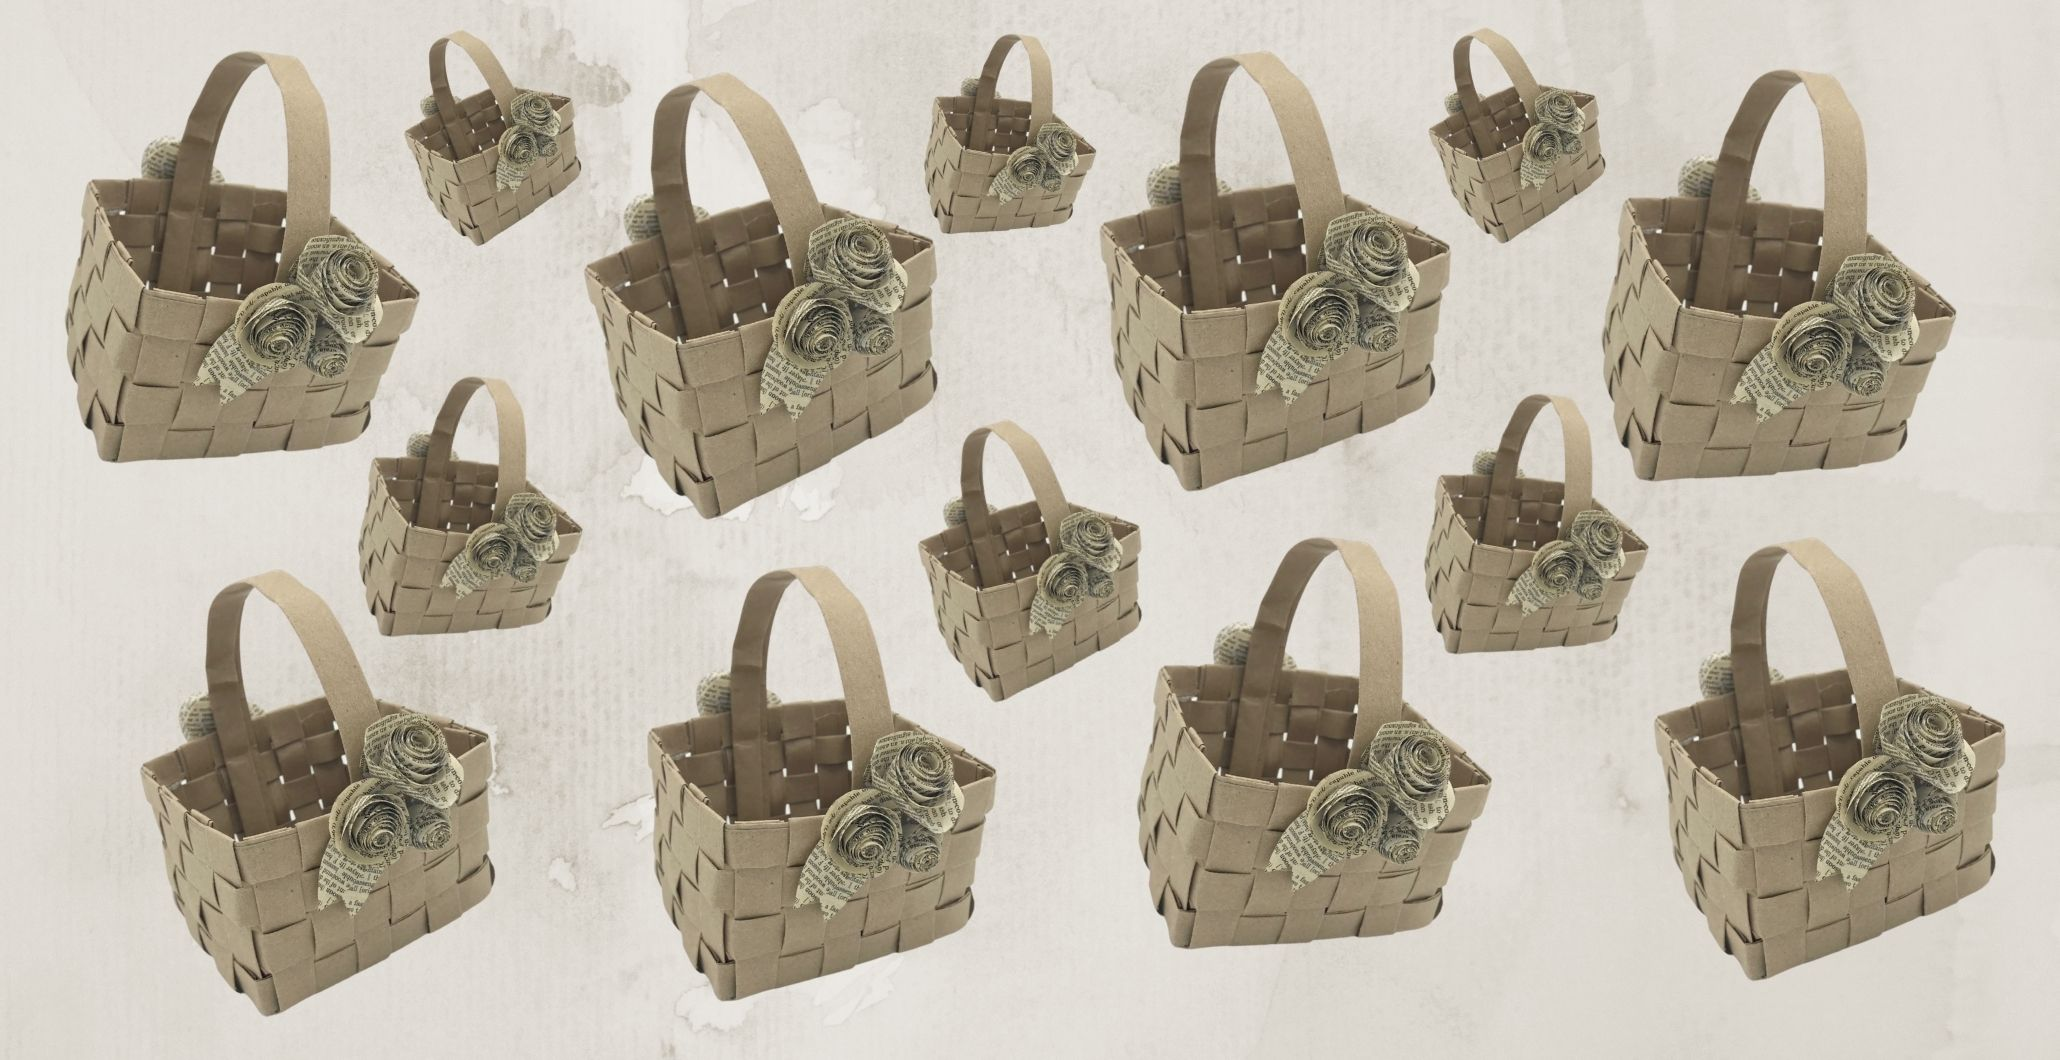 Take & Make: Woven Paper Bag Basket